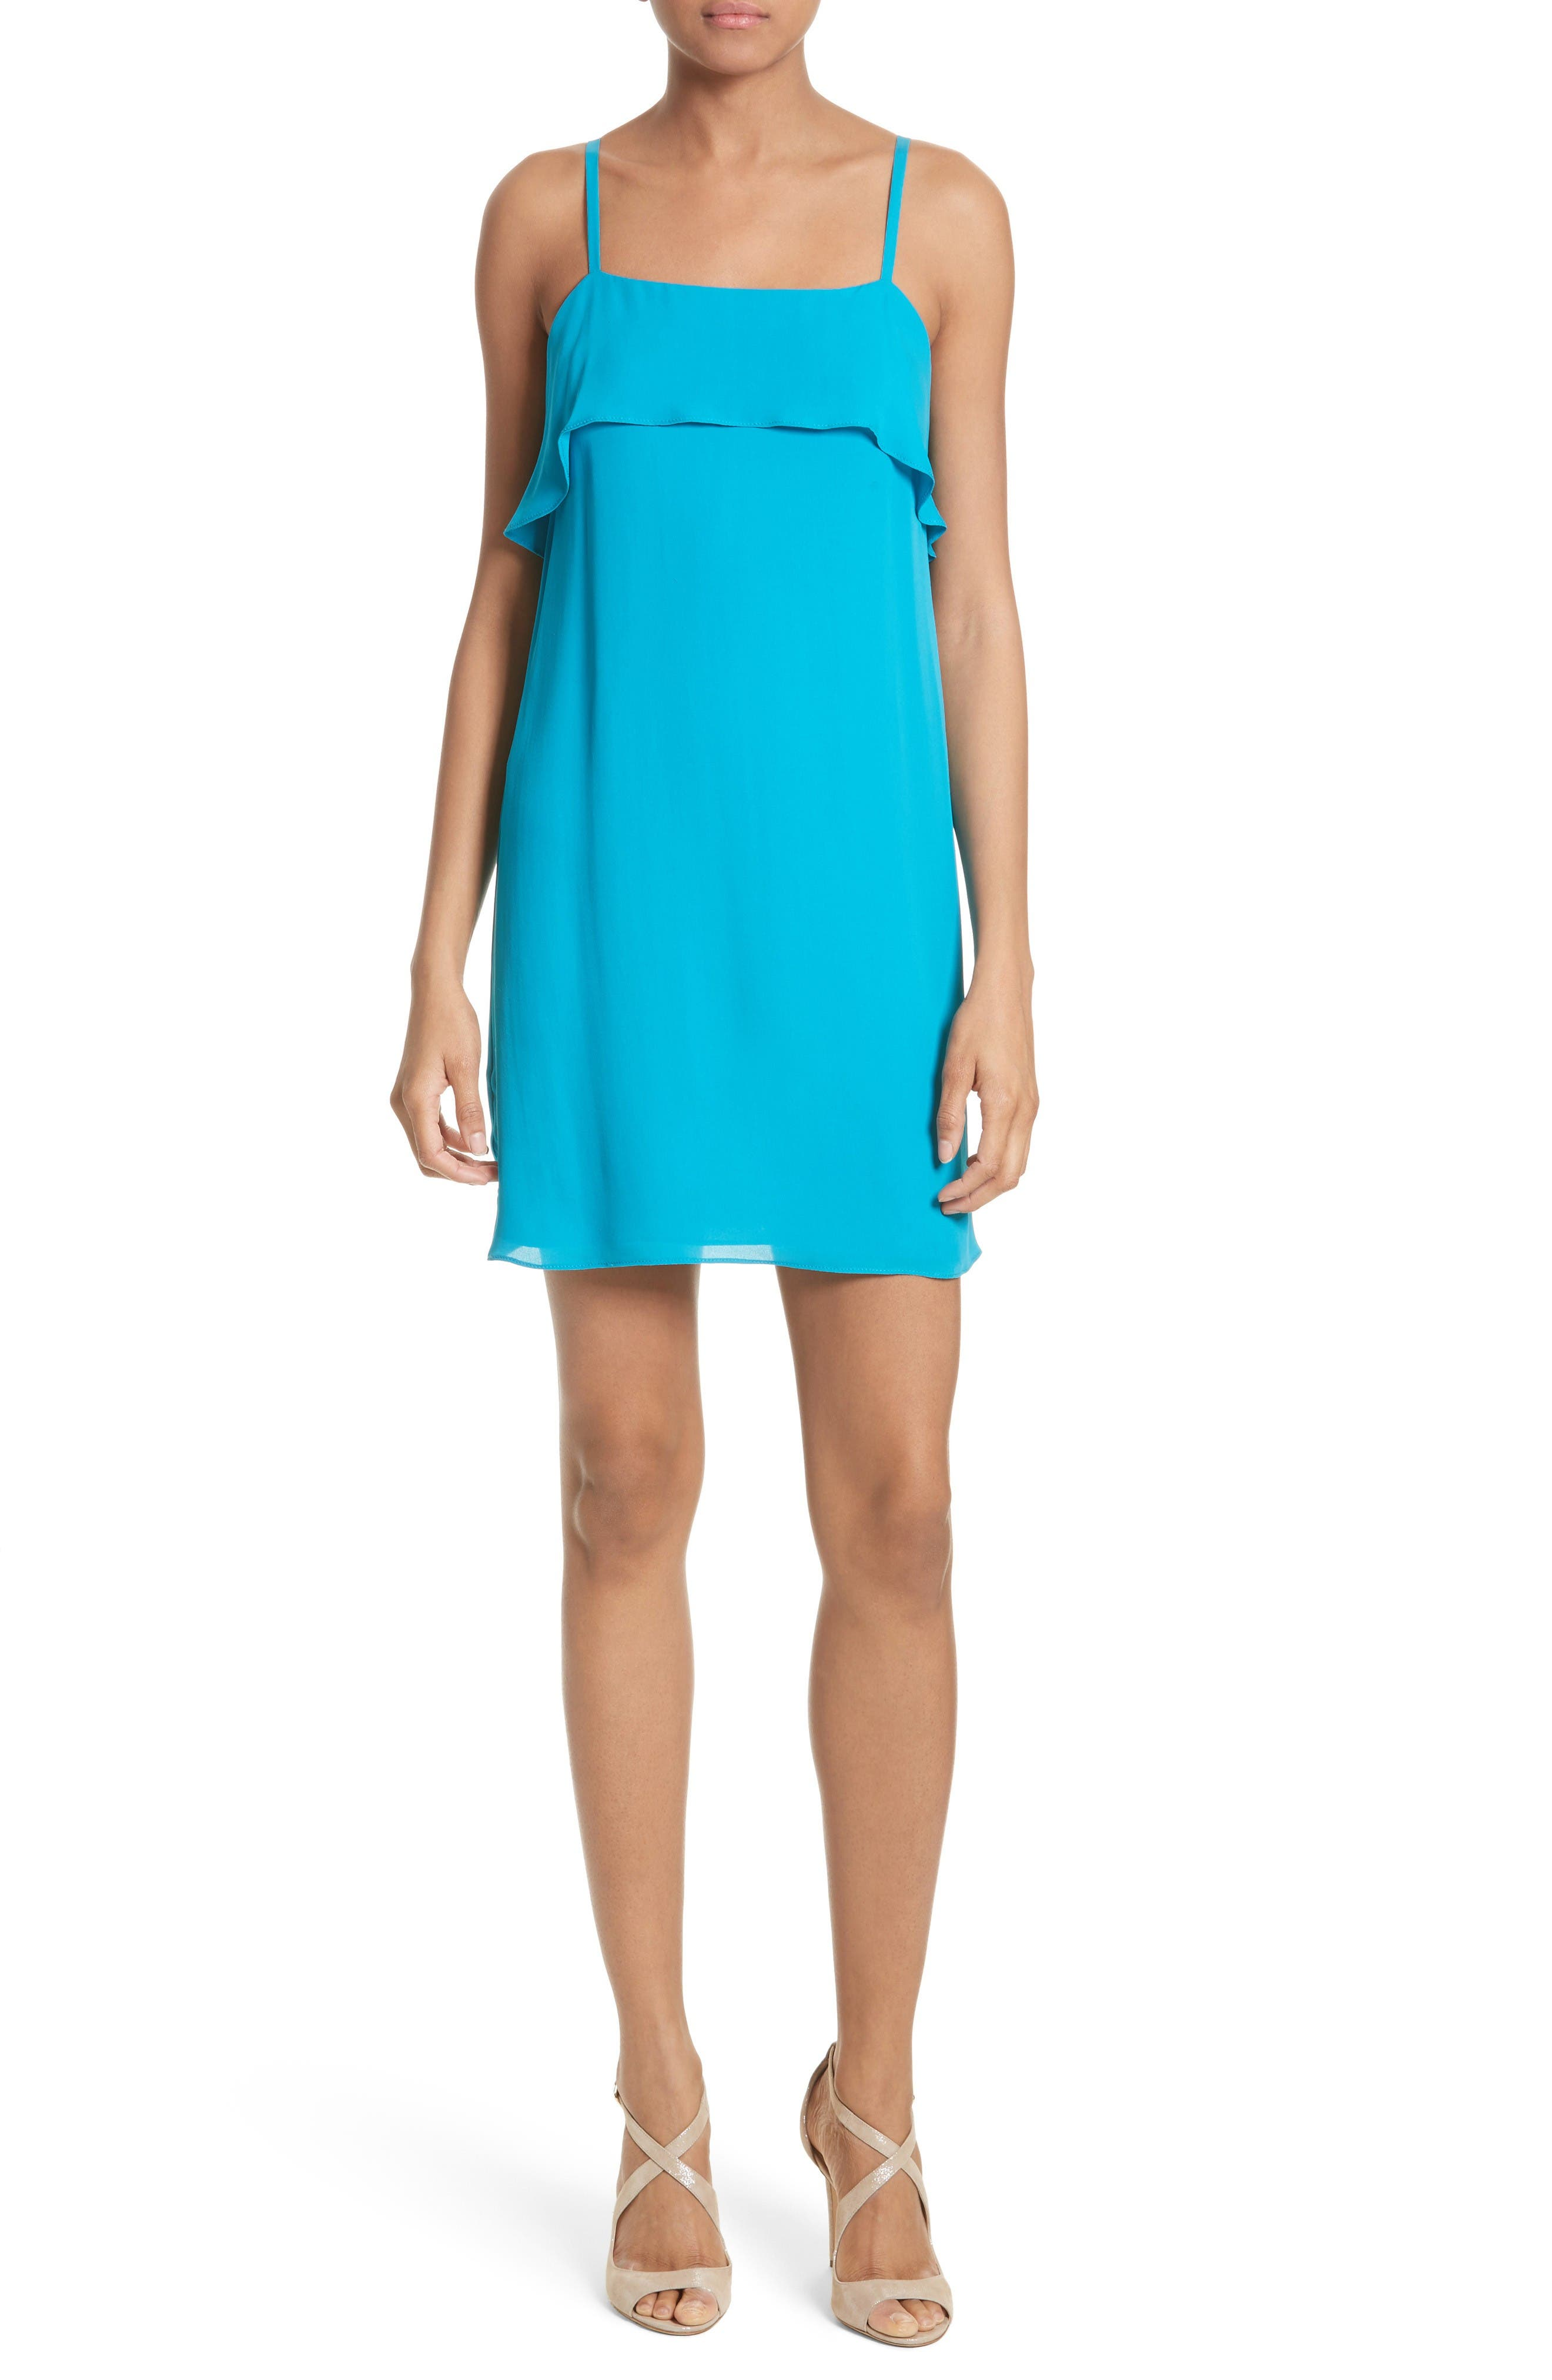 Alternate Image 1 Selected - Alice + Olivia Etta Shift Dress